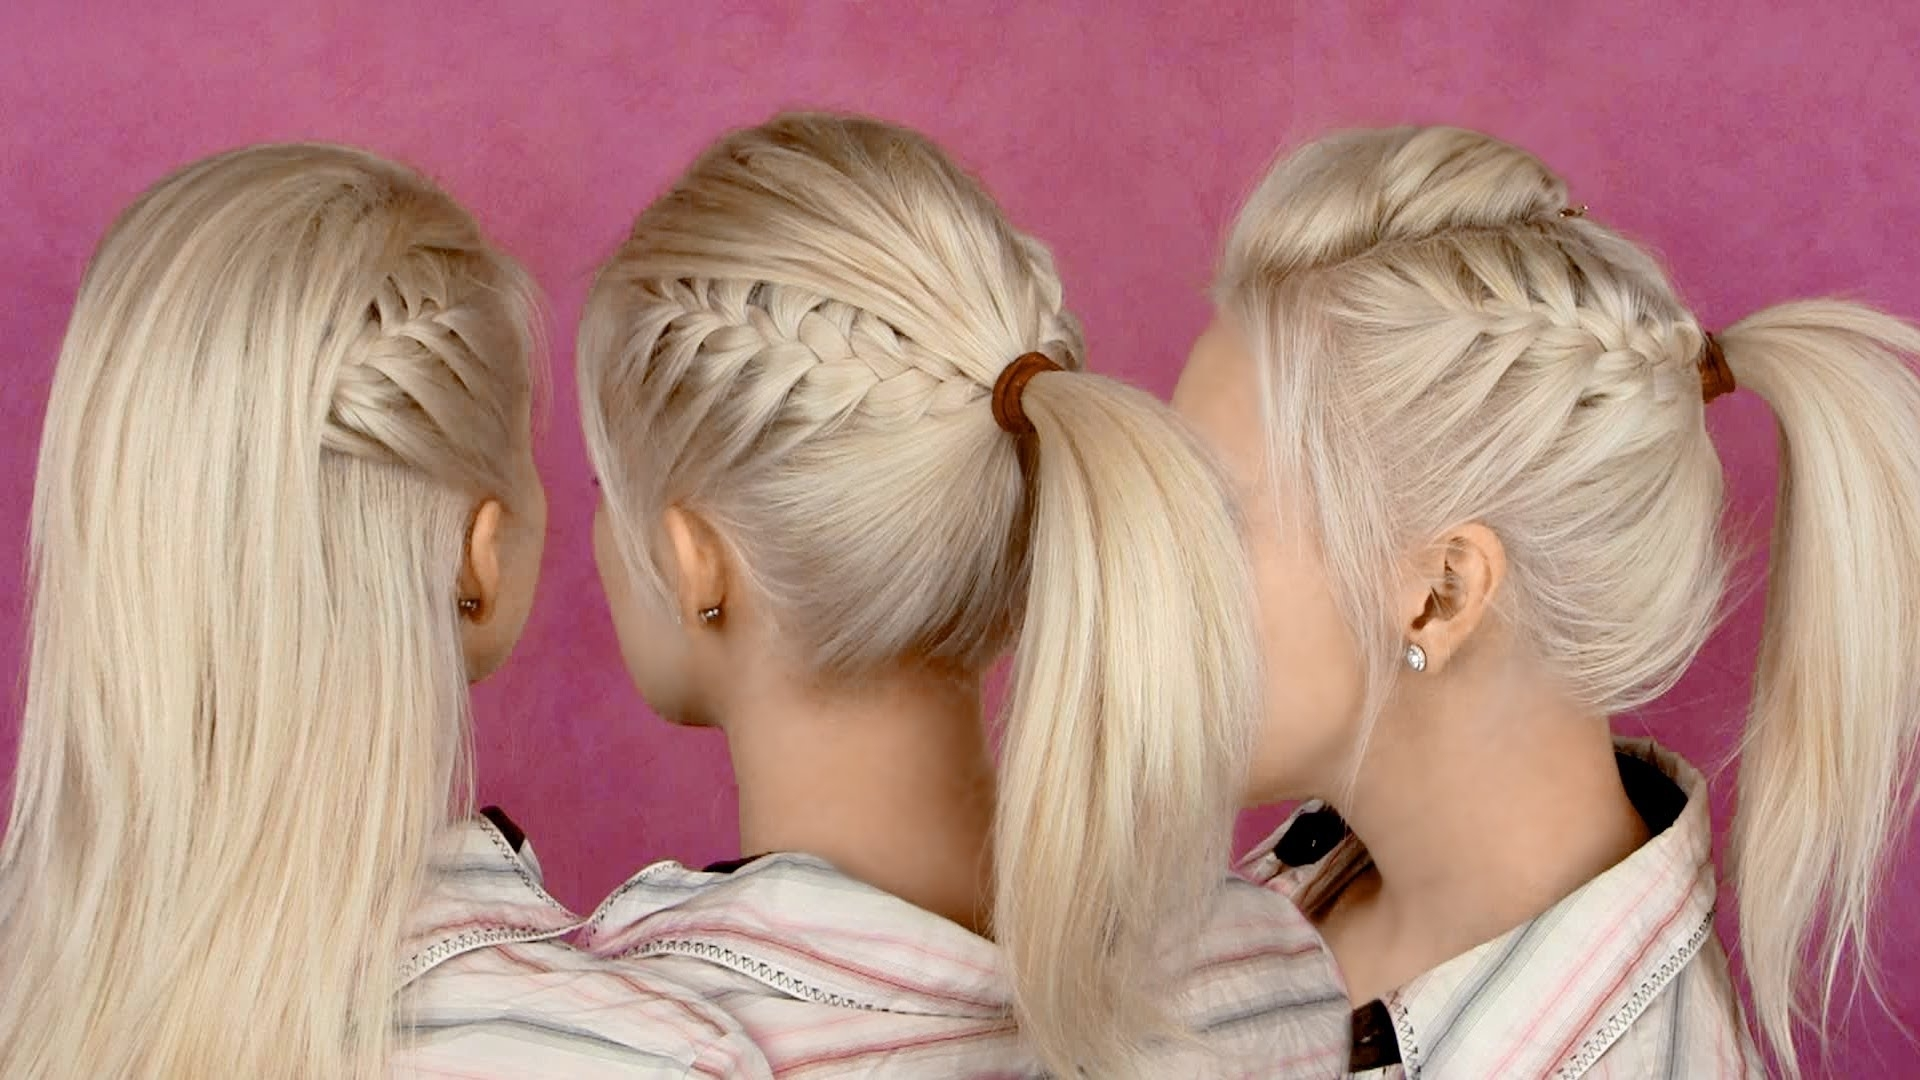 Latest Braided Hairstyles For Dance Inside Back To School Hairstyles For Everyday: Braided Half Updo And (View 8 of 15)